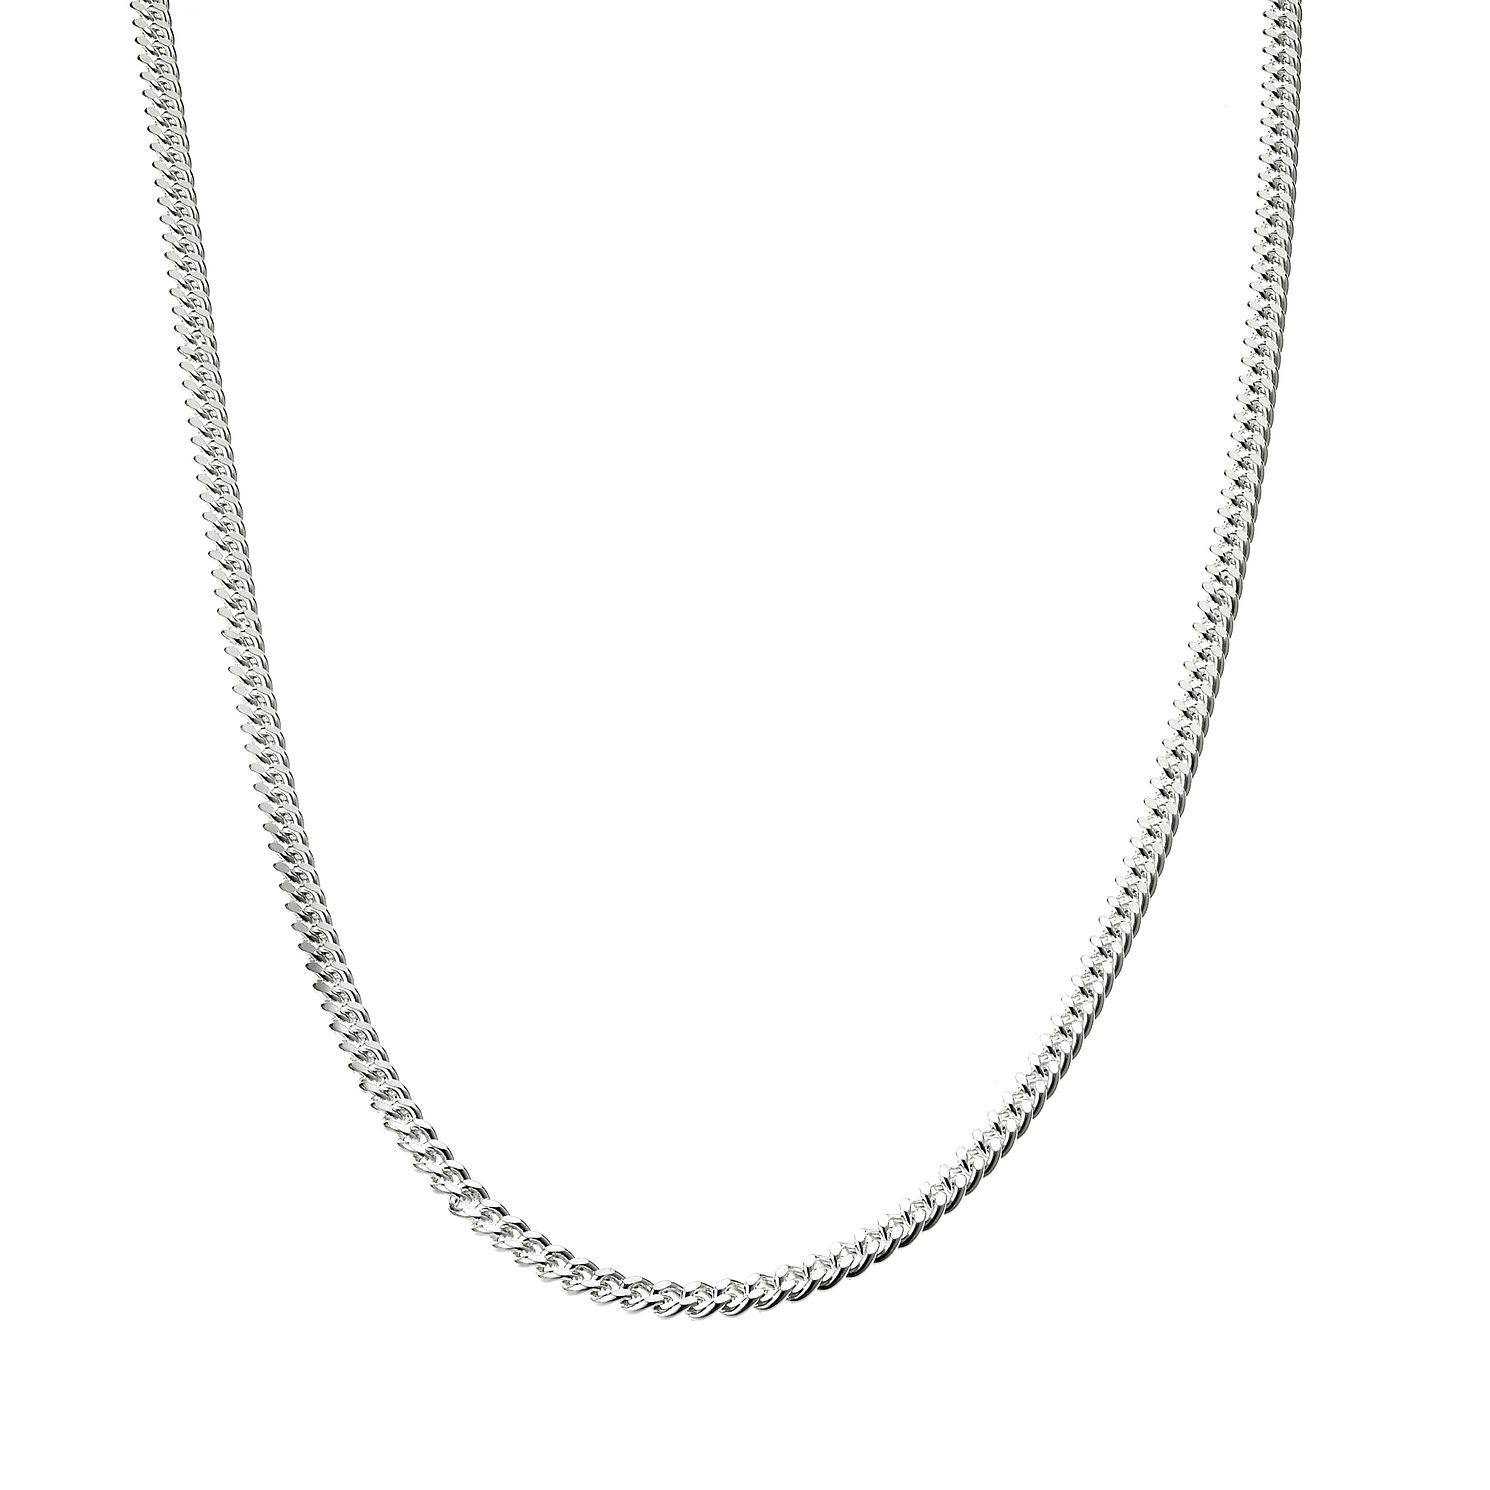 l russell simmons men essential mini chain necklace dap stainless with s chains steel october razor jewelry best